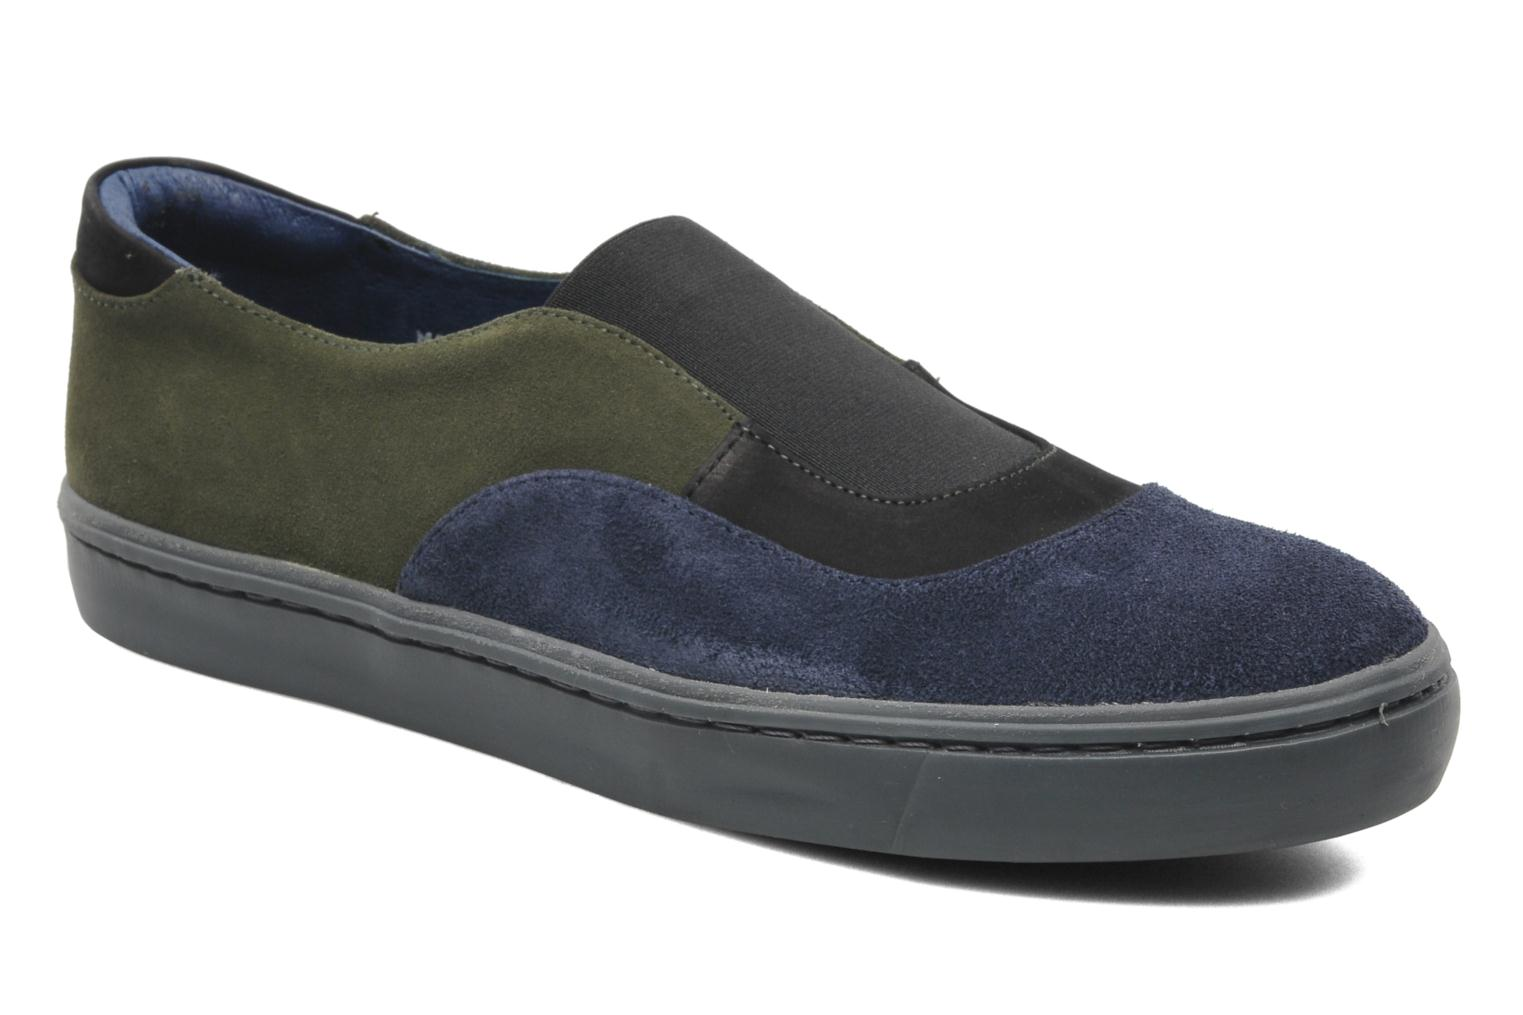 Sneakers Mason Slip On by Opening Ceremony